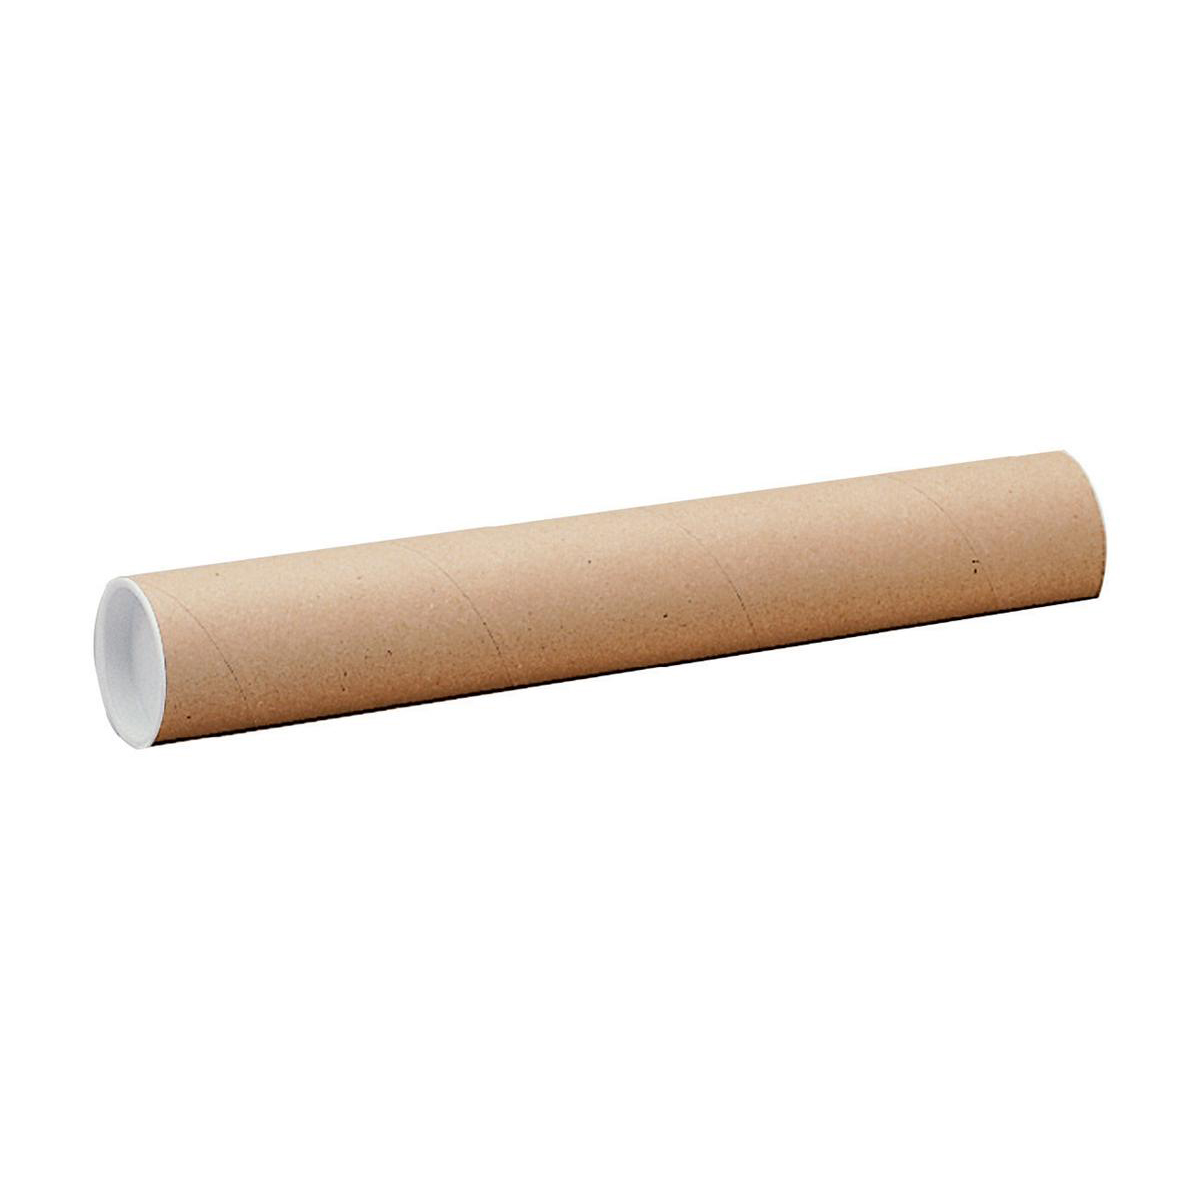 Postal Tube Cardboard with Plastic End Caps L1140xDia.102mm RBL10526 Pack 12